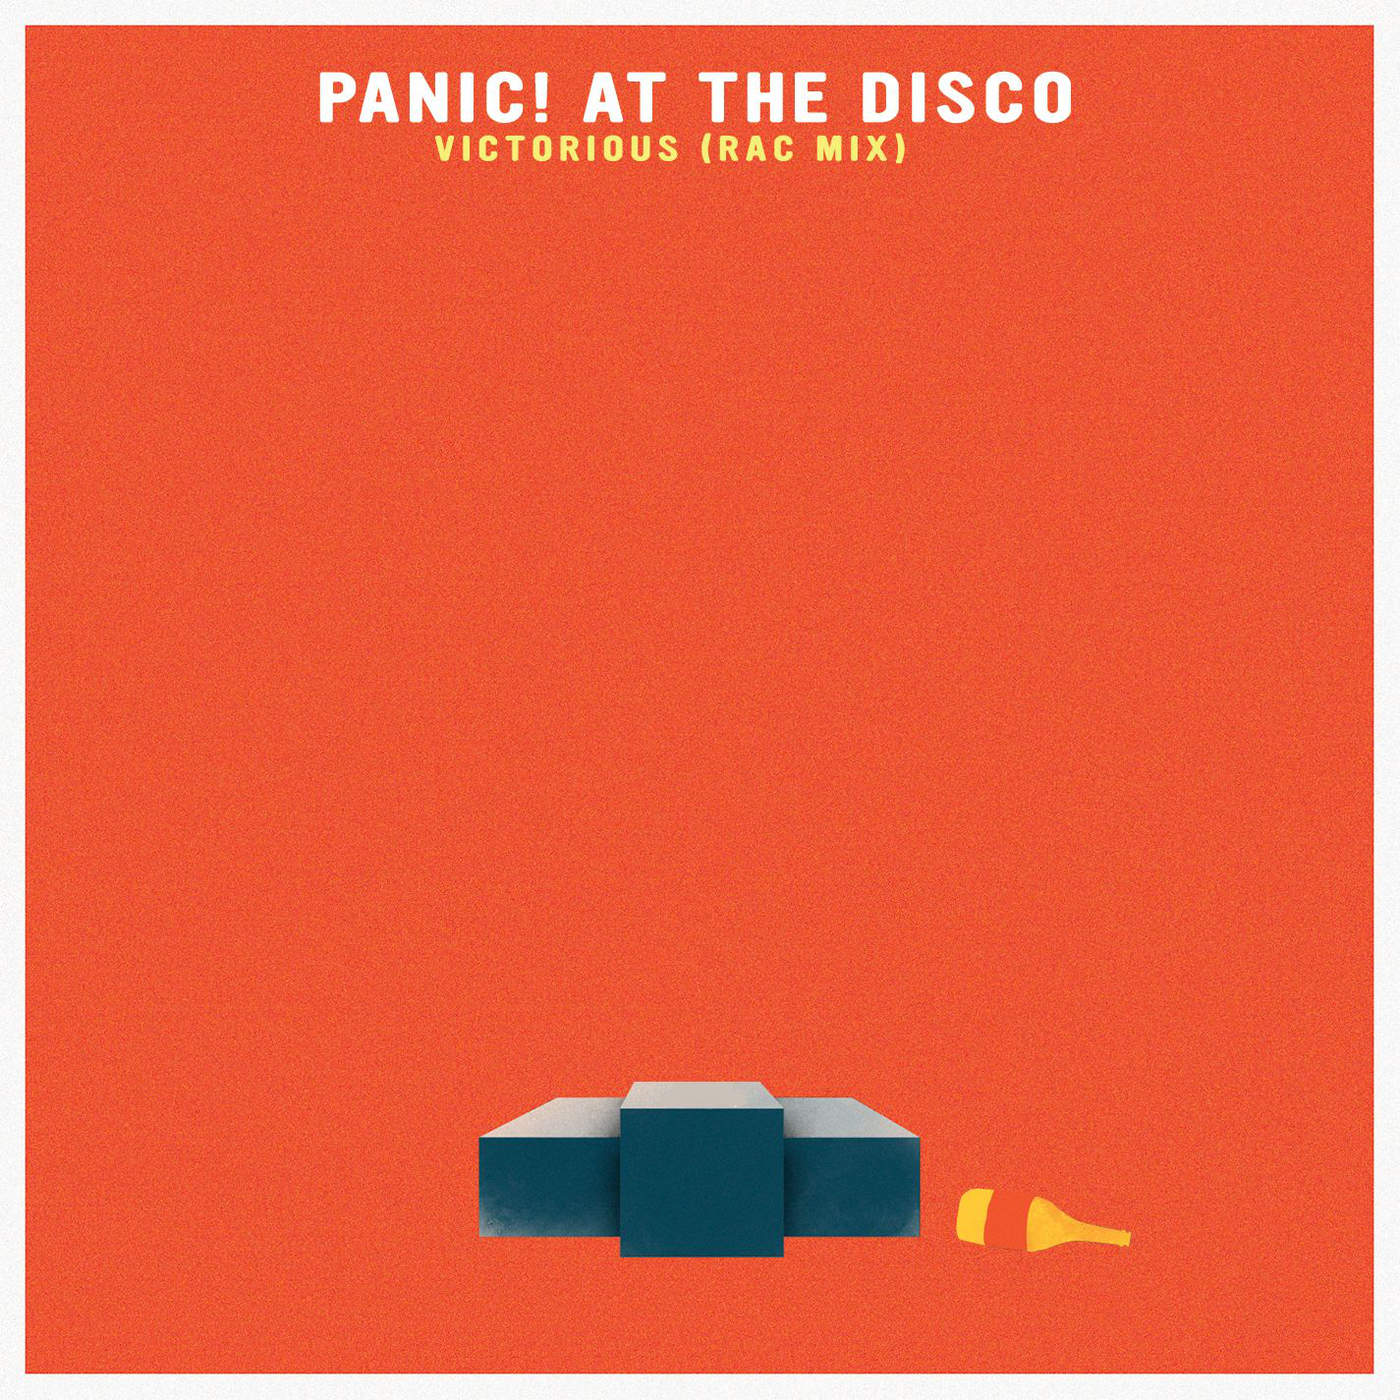 Panic! At the Disco - Victorious (RAC Mix) - Single Cover